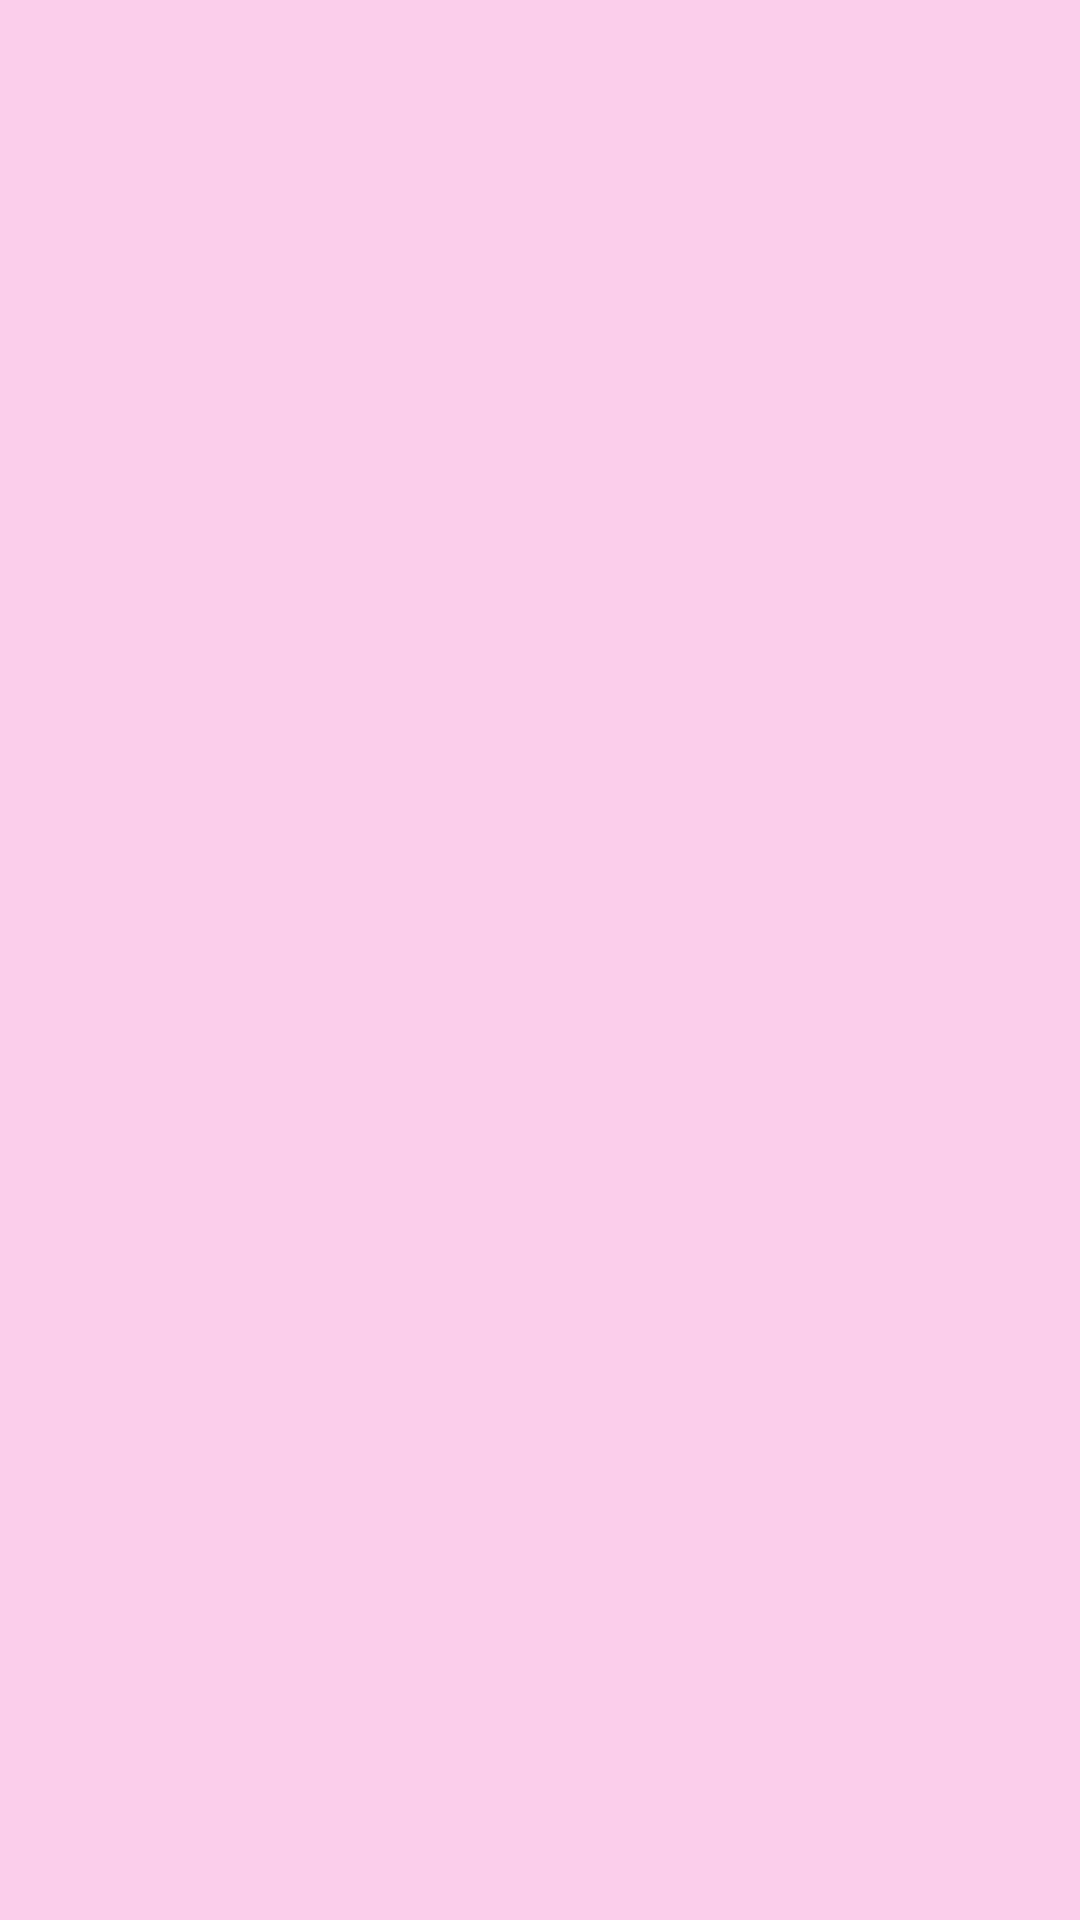 1080x1920 Classic Rose Solid Color Background